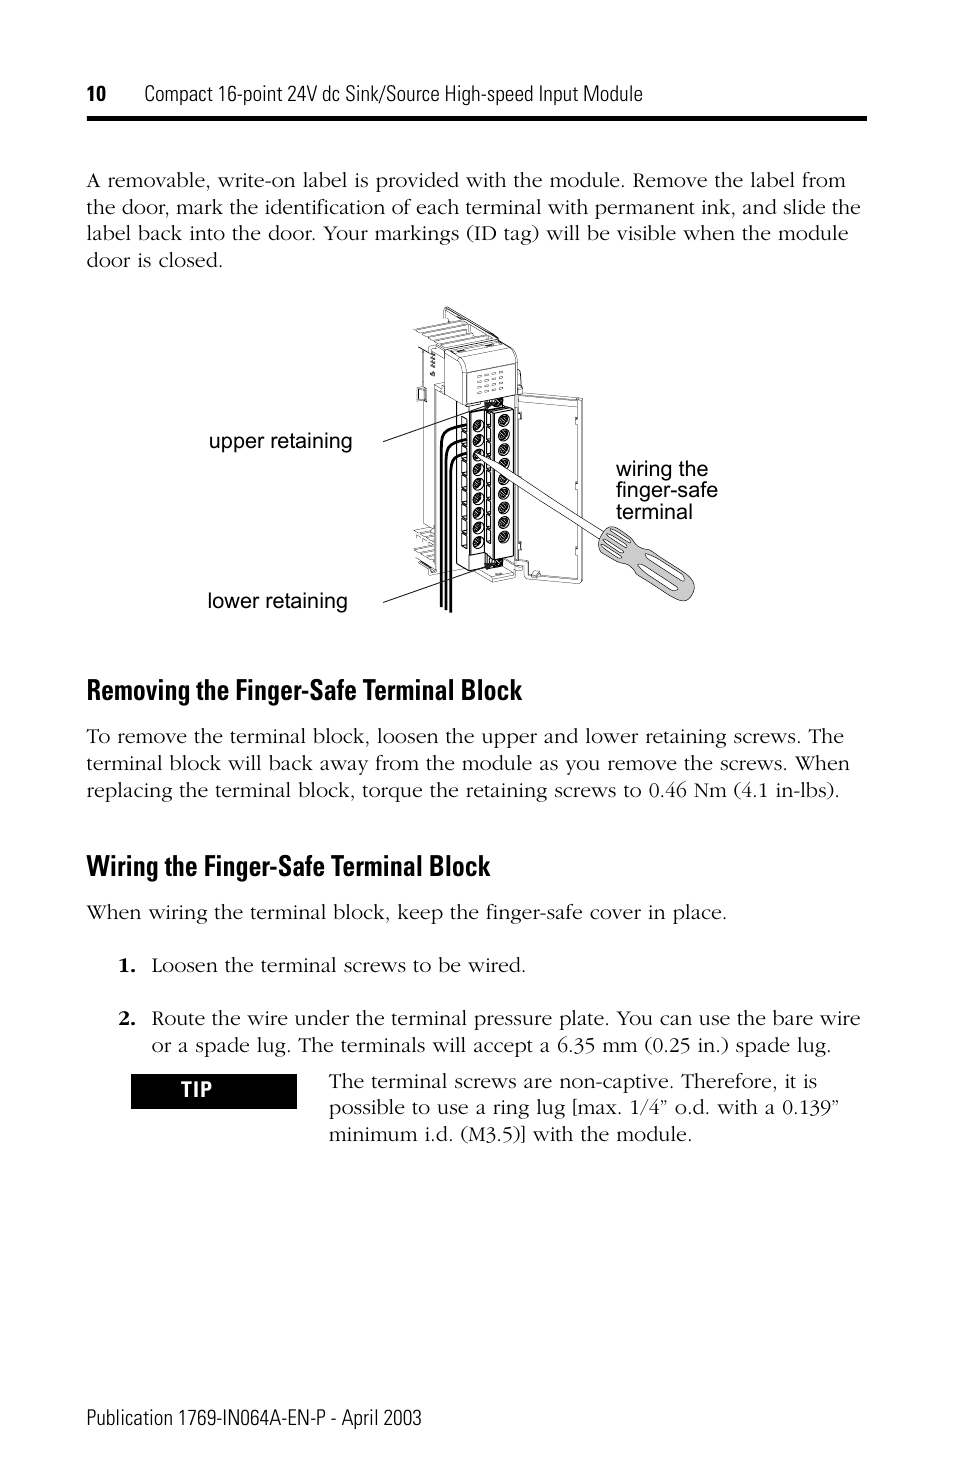 medium resolution of removing the finger safe terminal block wiring the finger safe terminal block rockwell automation 1769 iq16f compact 24v dc sink source input module user